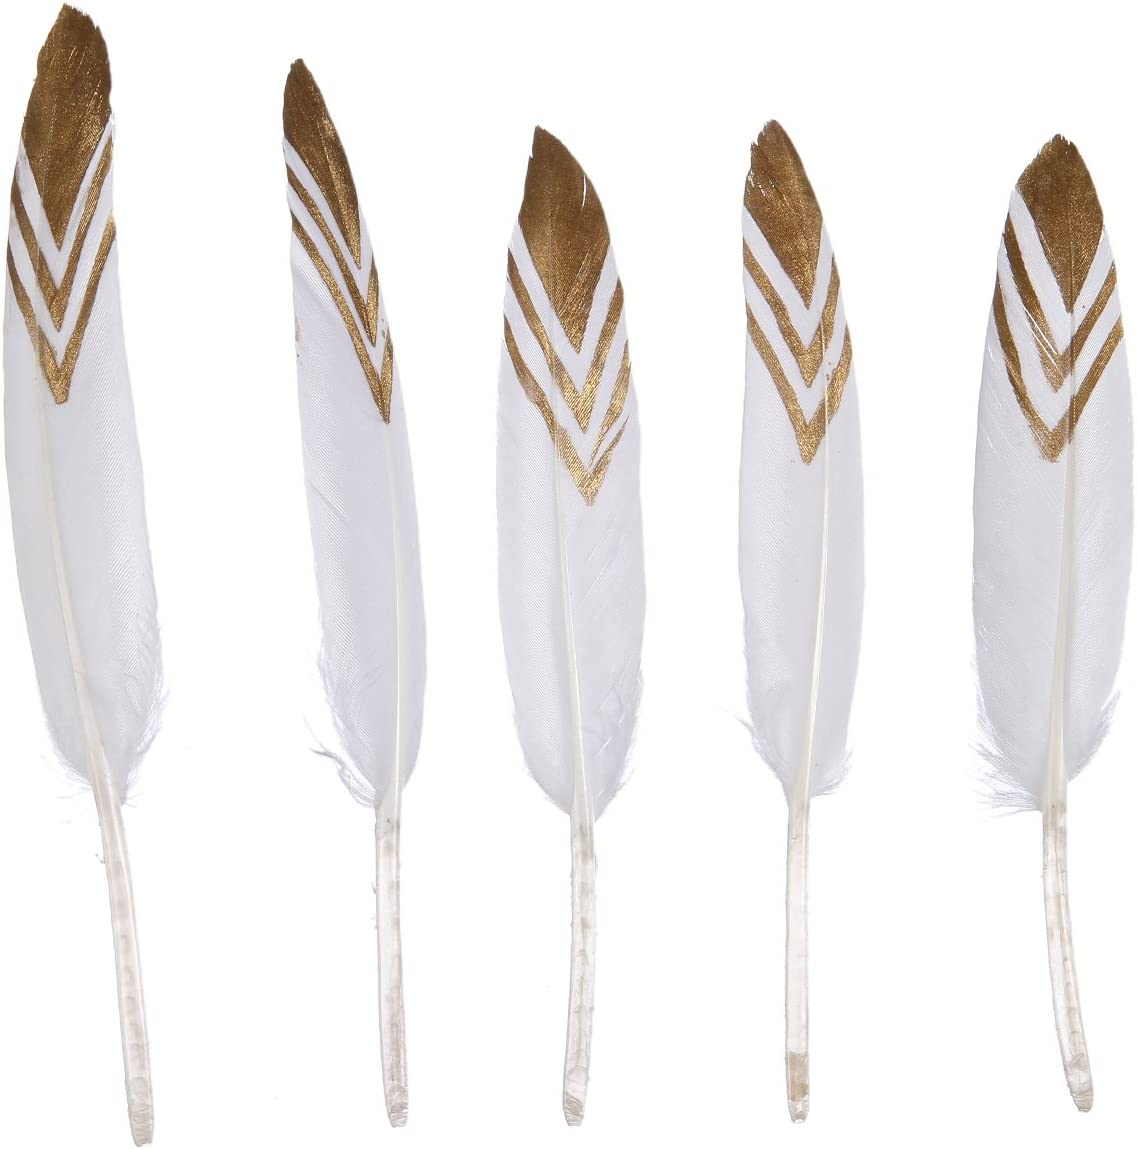 WAKEACE 20pcs 5 ☆ popular Pieces Goose Feather Simulation 4-6 Gold Inches Max 68% OFF